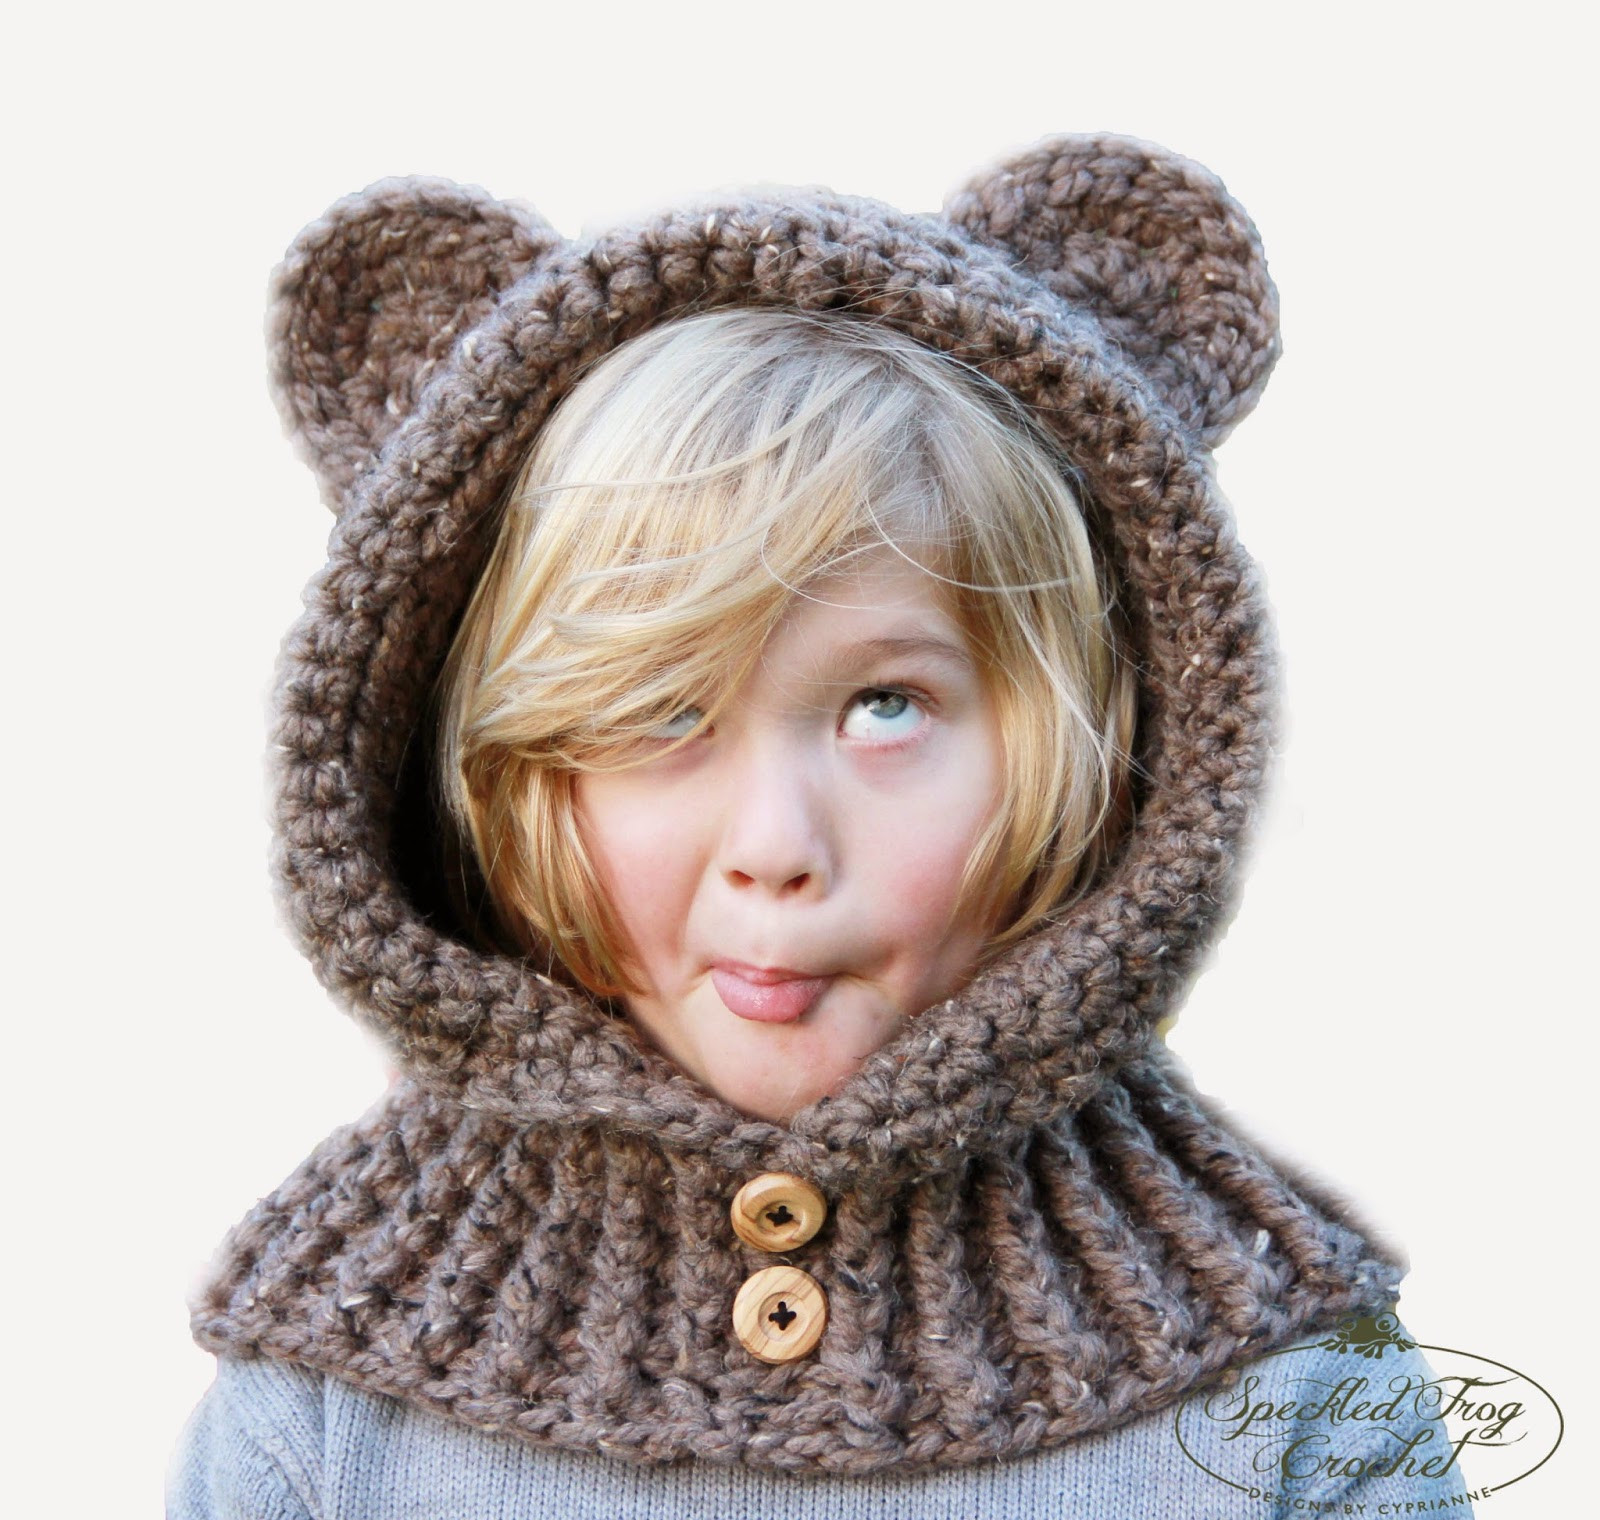 Crochet Hoodie Best Of Crochet Hooded Bear Cowl Pattern Of Awesome 43 Images Crochet Hoodie